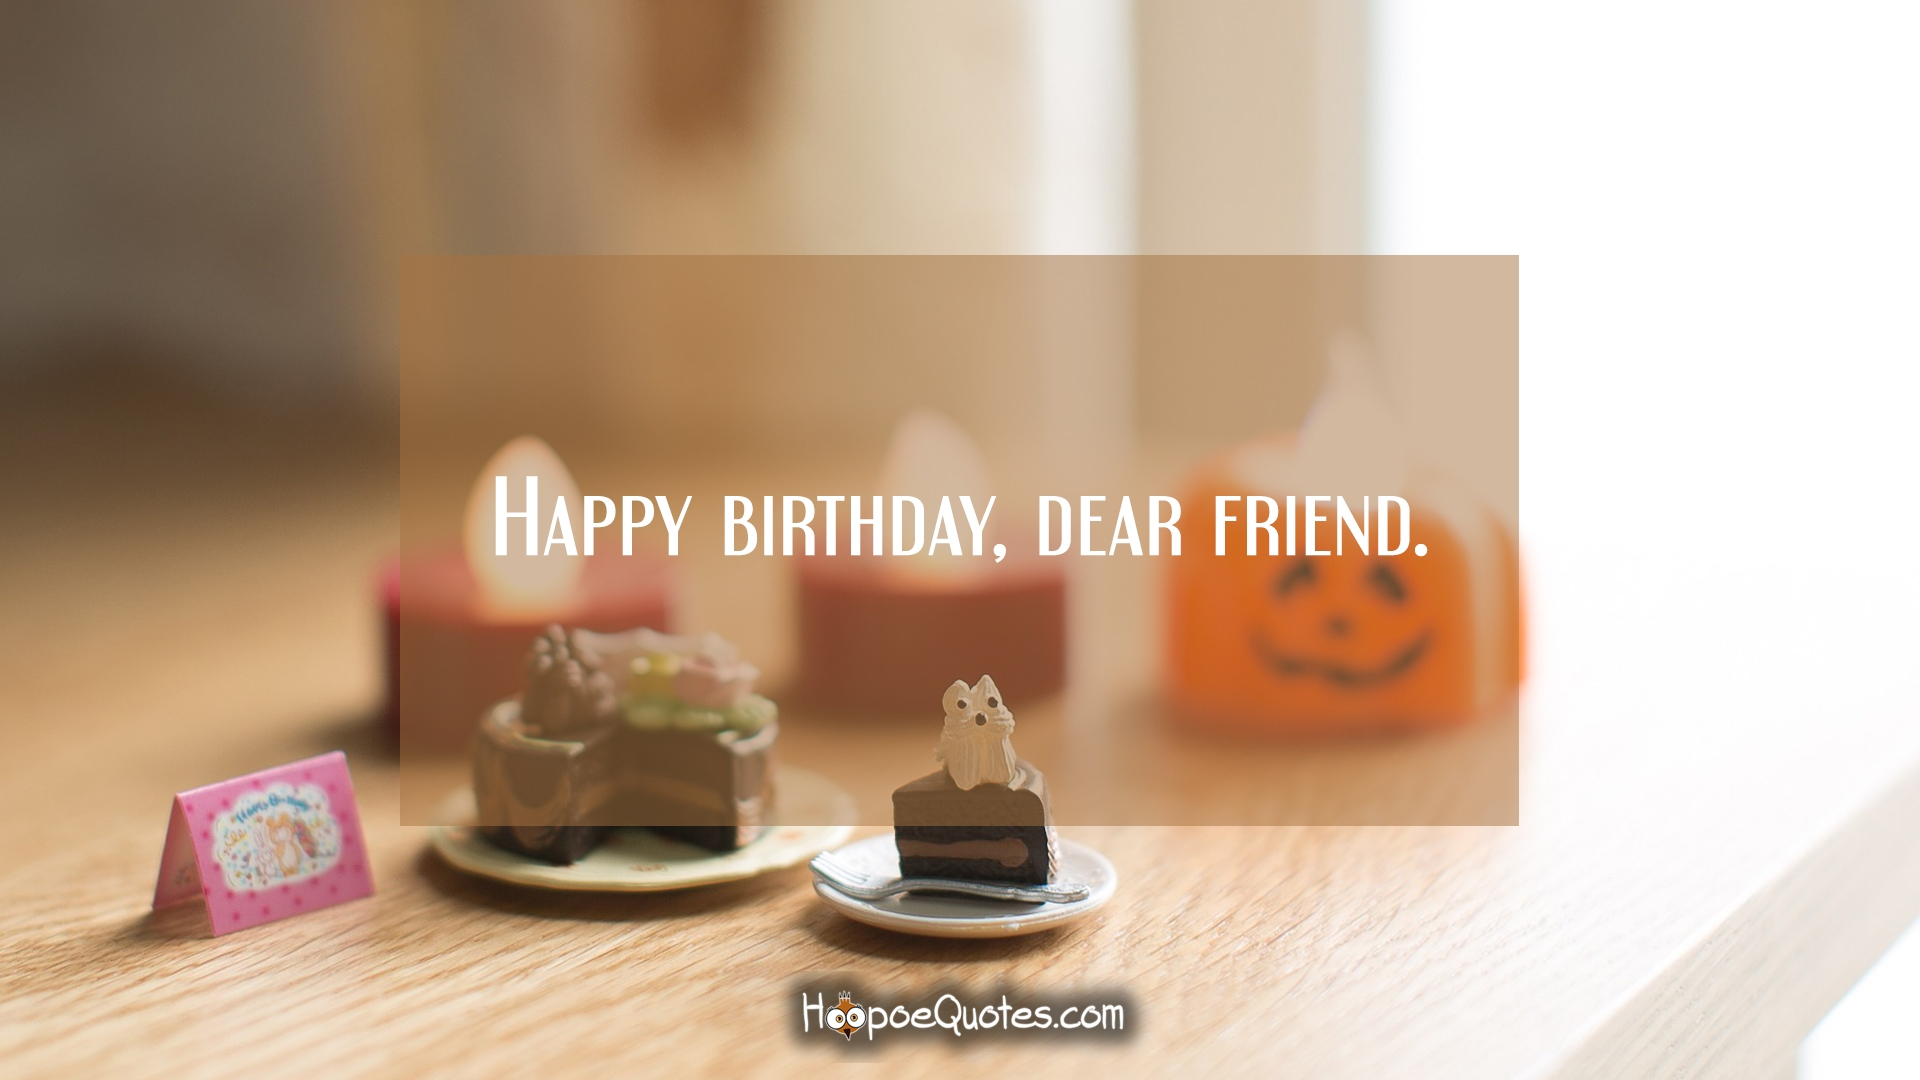 780 Hd Images Happy Birthday Wishes Discover Beautiful Birthday